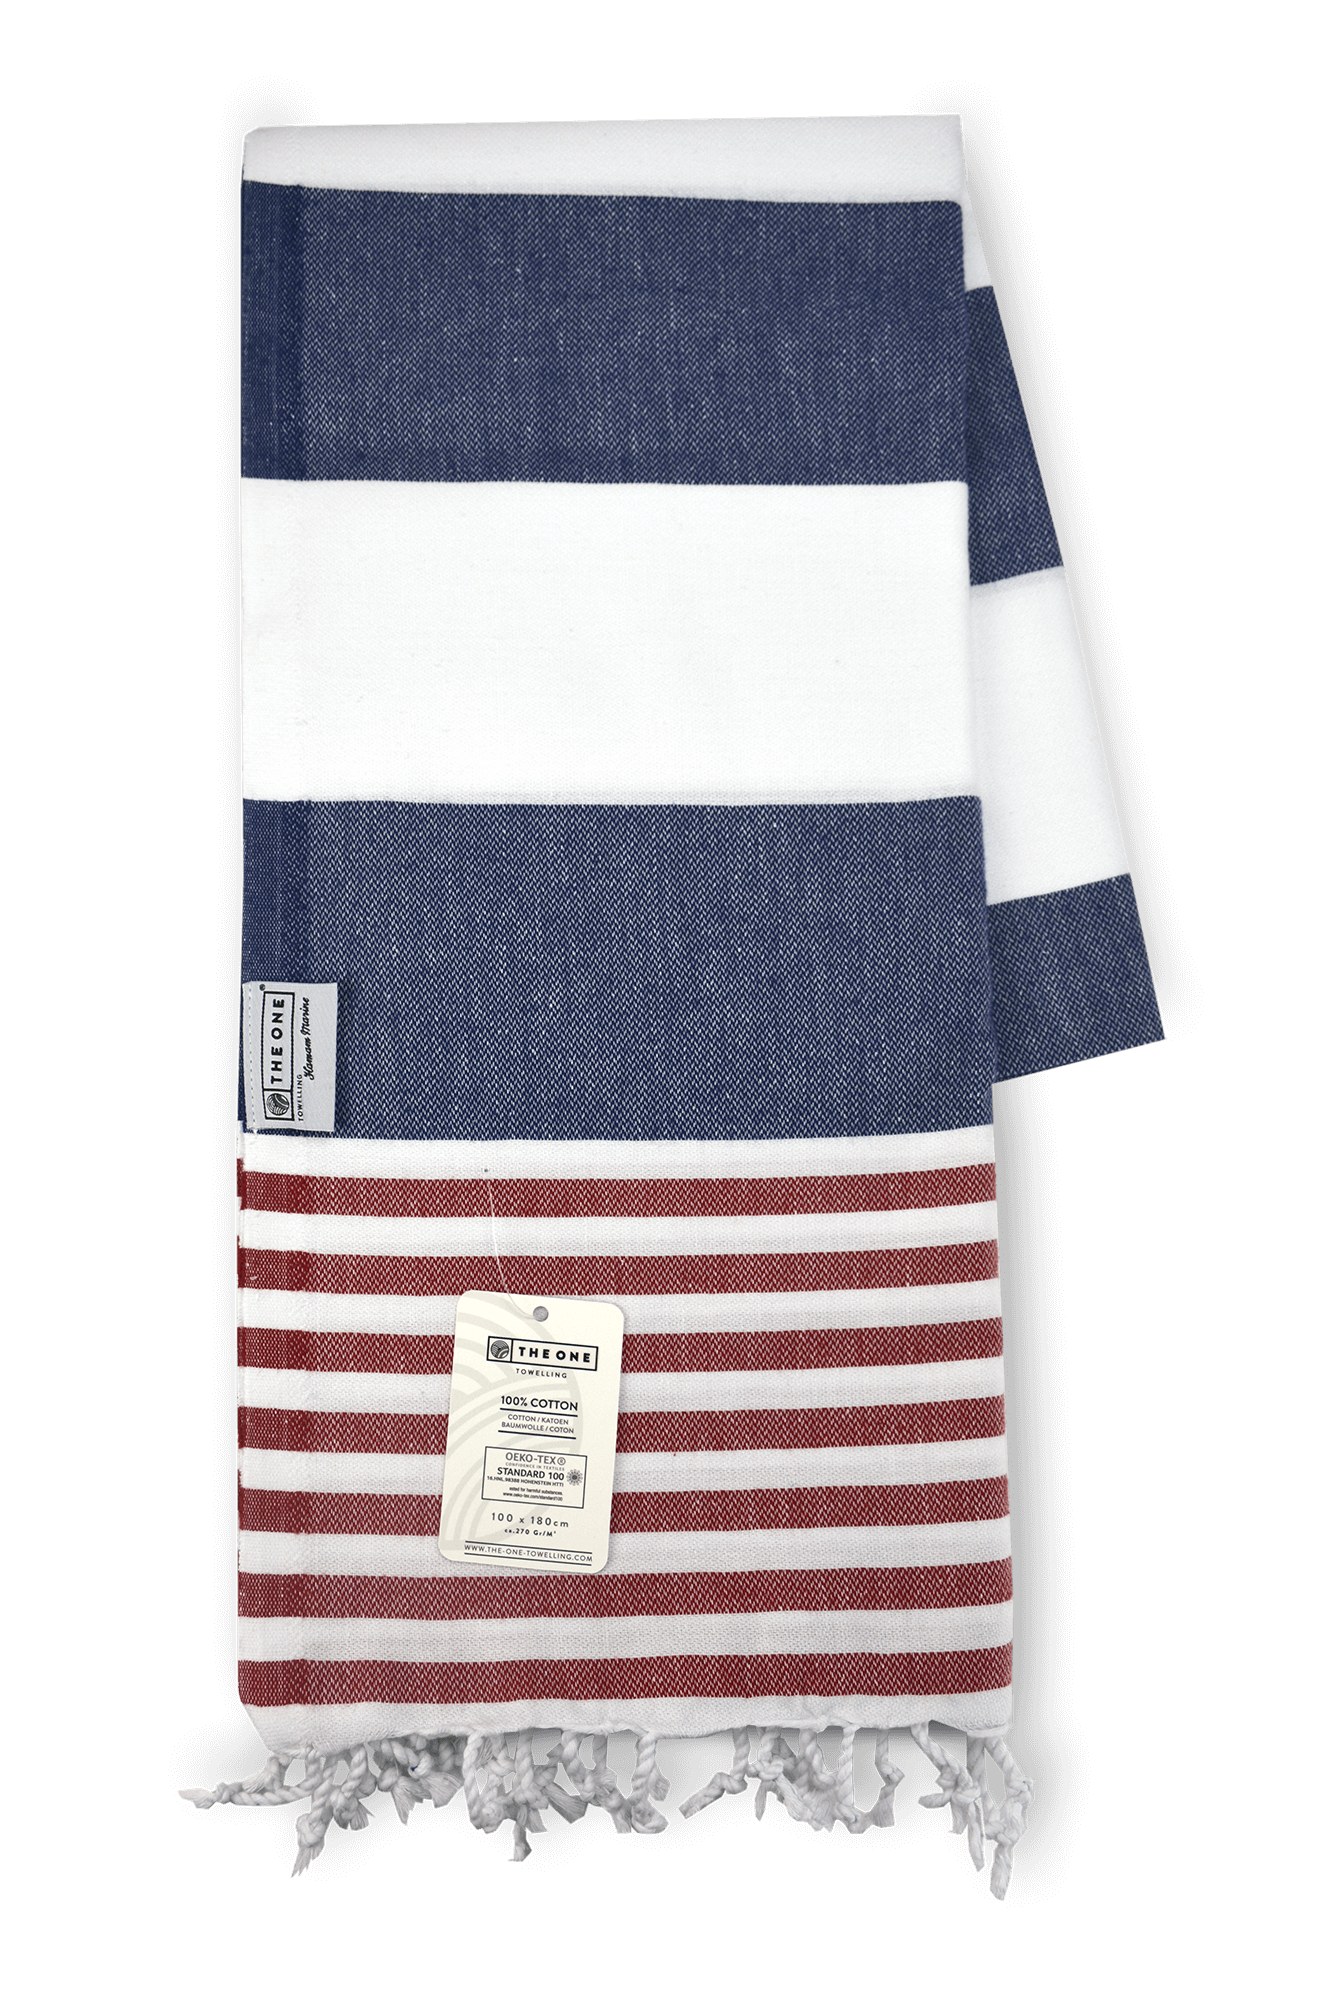 Hamamdoek navy red